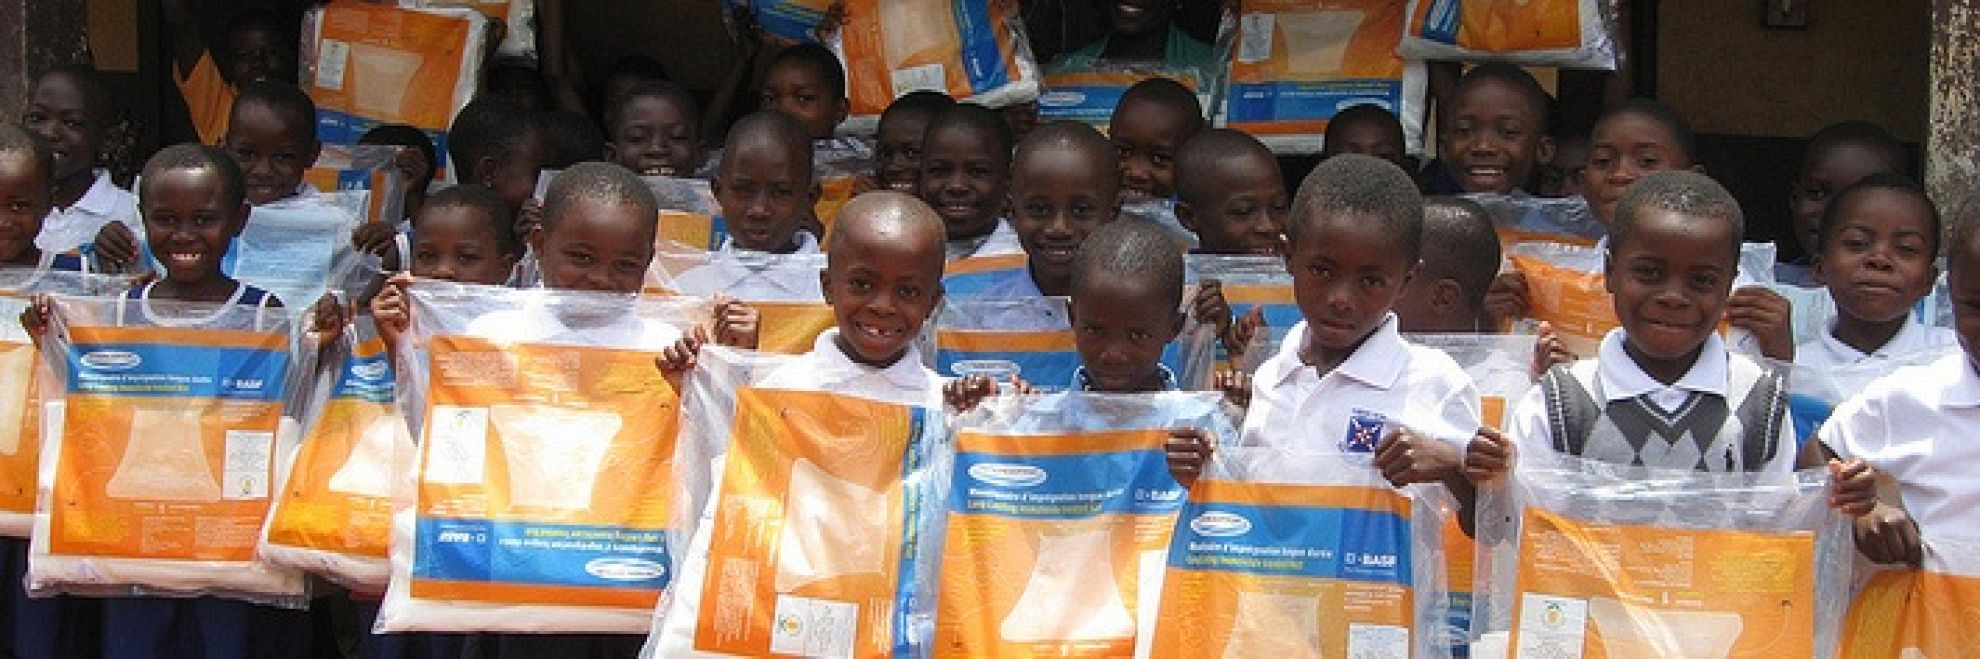 Latest News 12 million mosquito nets and innovative thinking make ghana malaria partnership a success